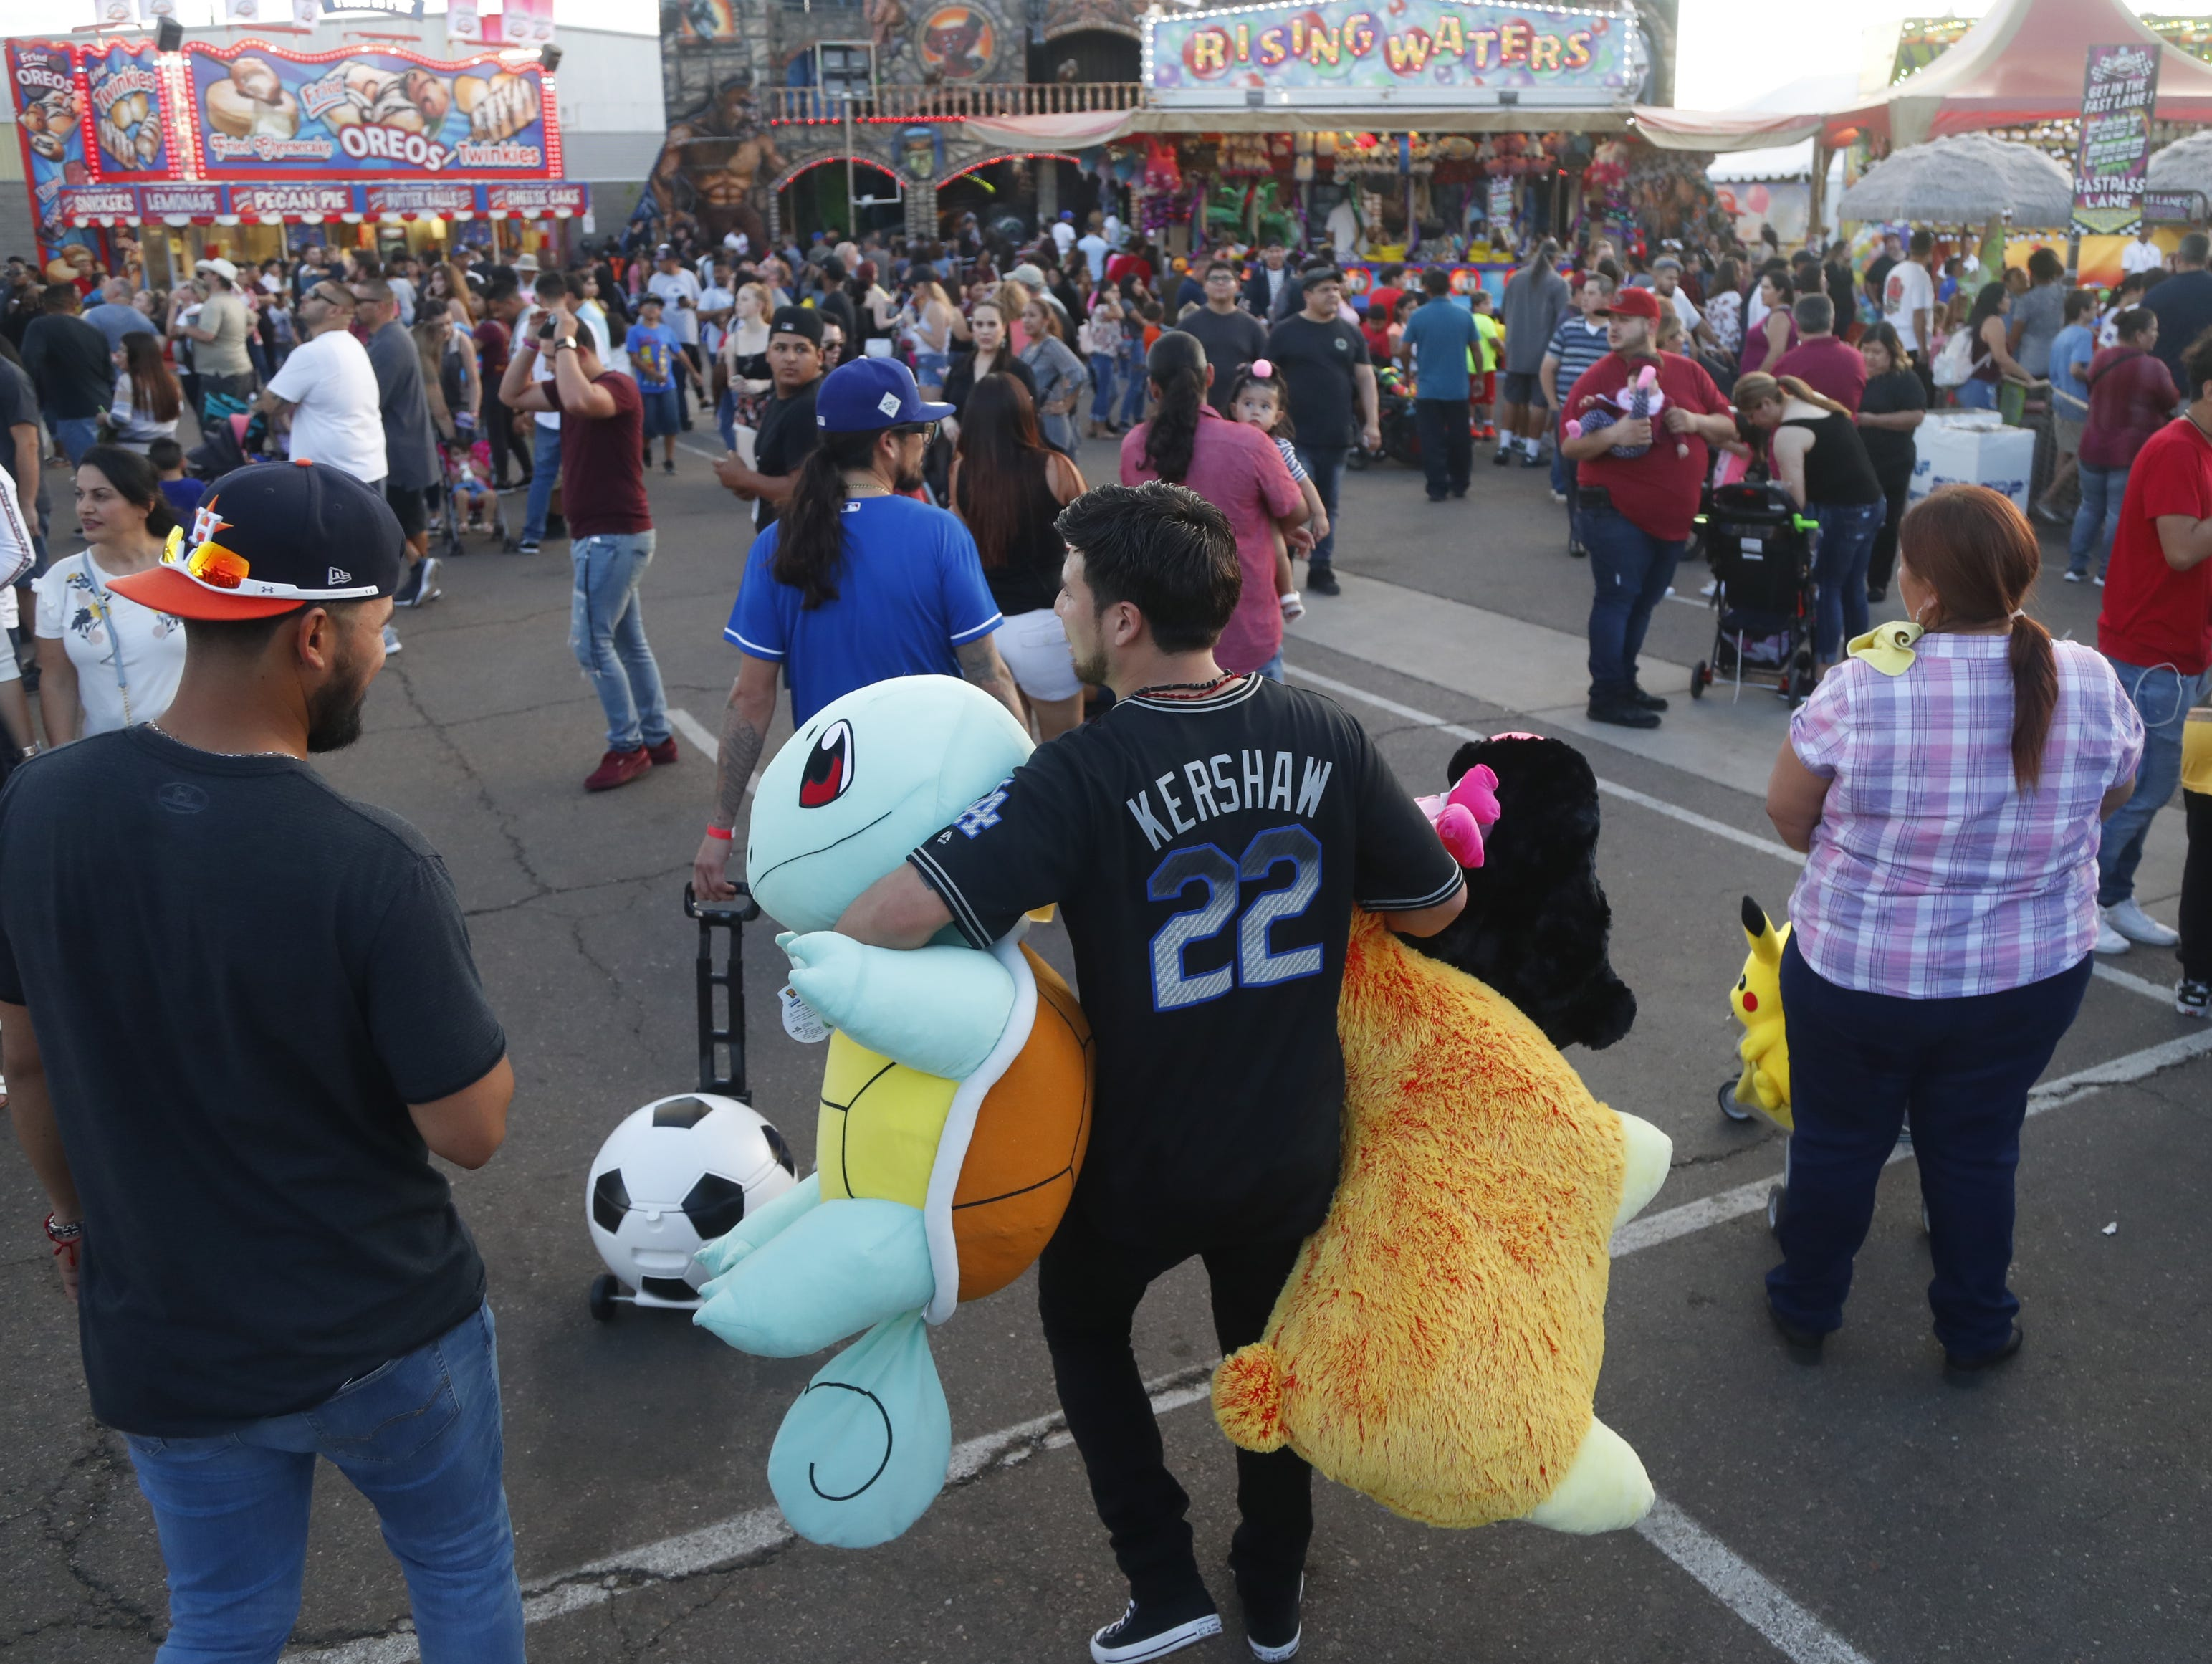 Fair-goers make their rounds in packed crowds at the Arizona State Fair in Phoenix, Ariz. on October 21, 2018.